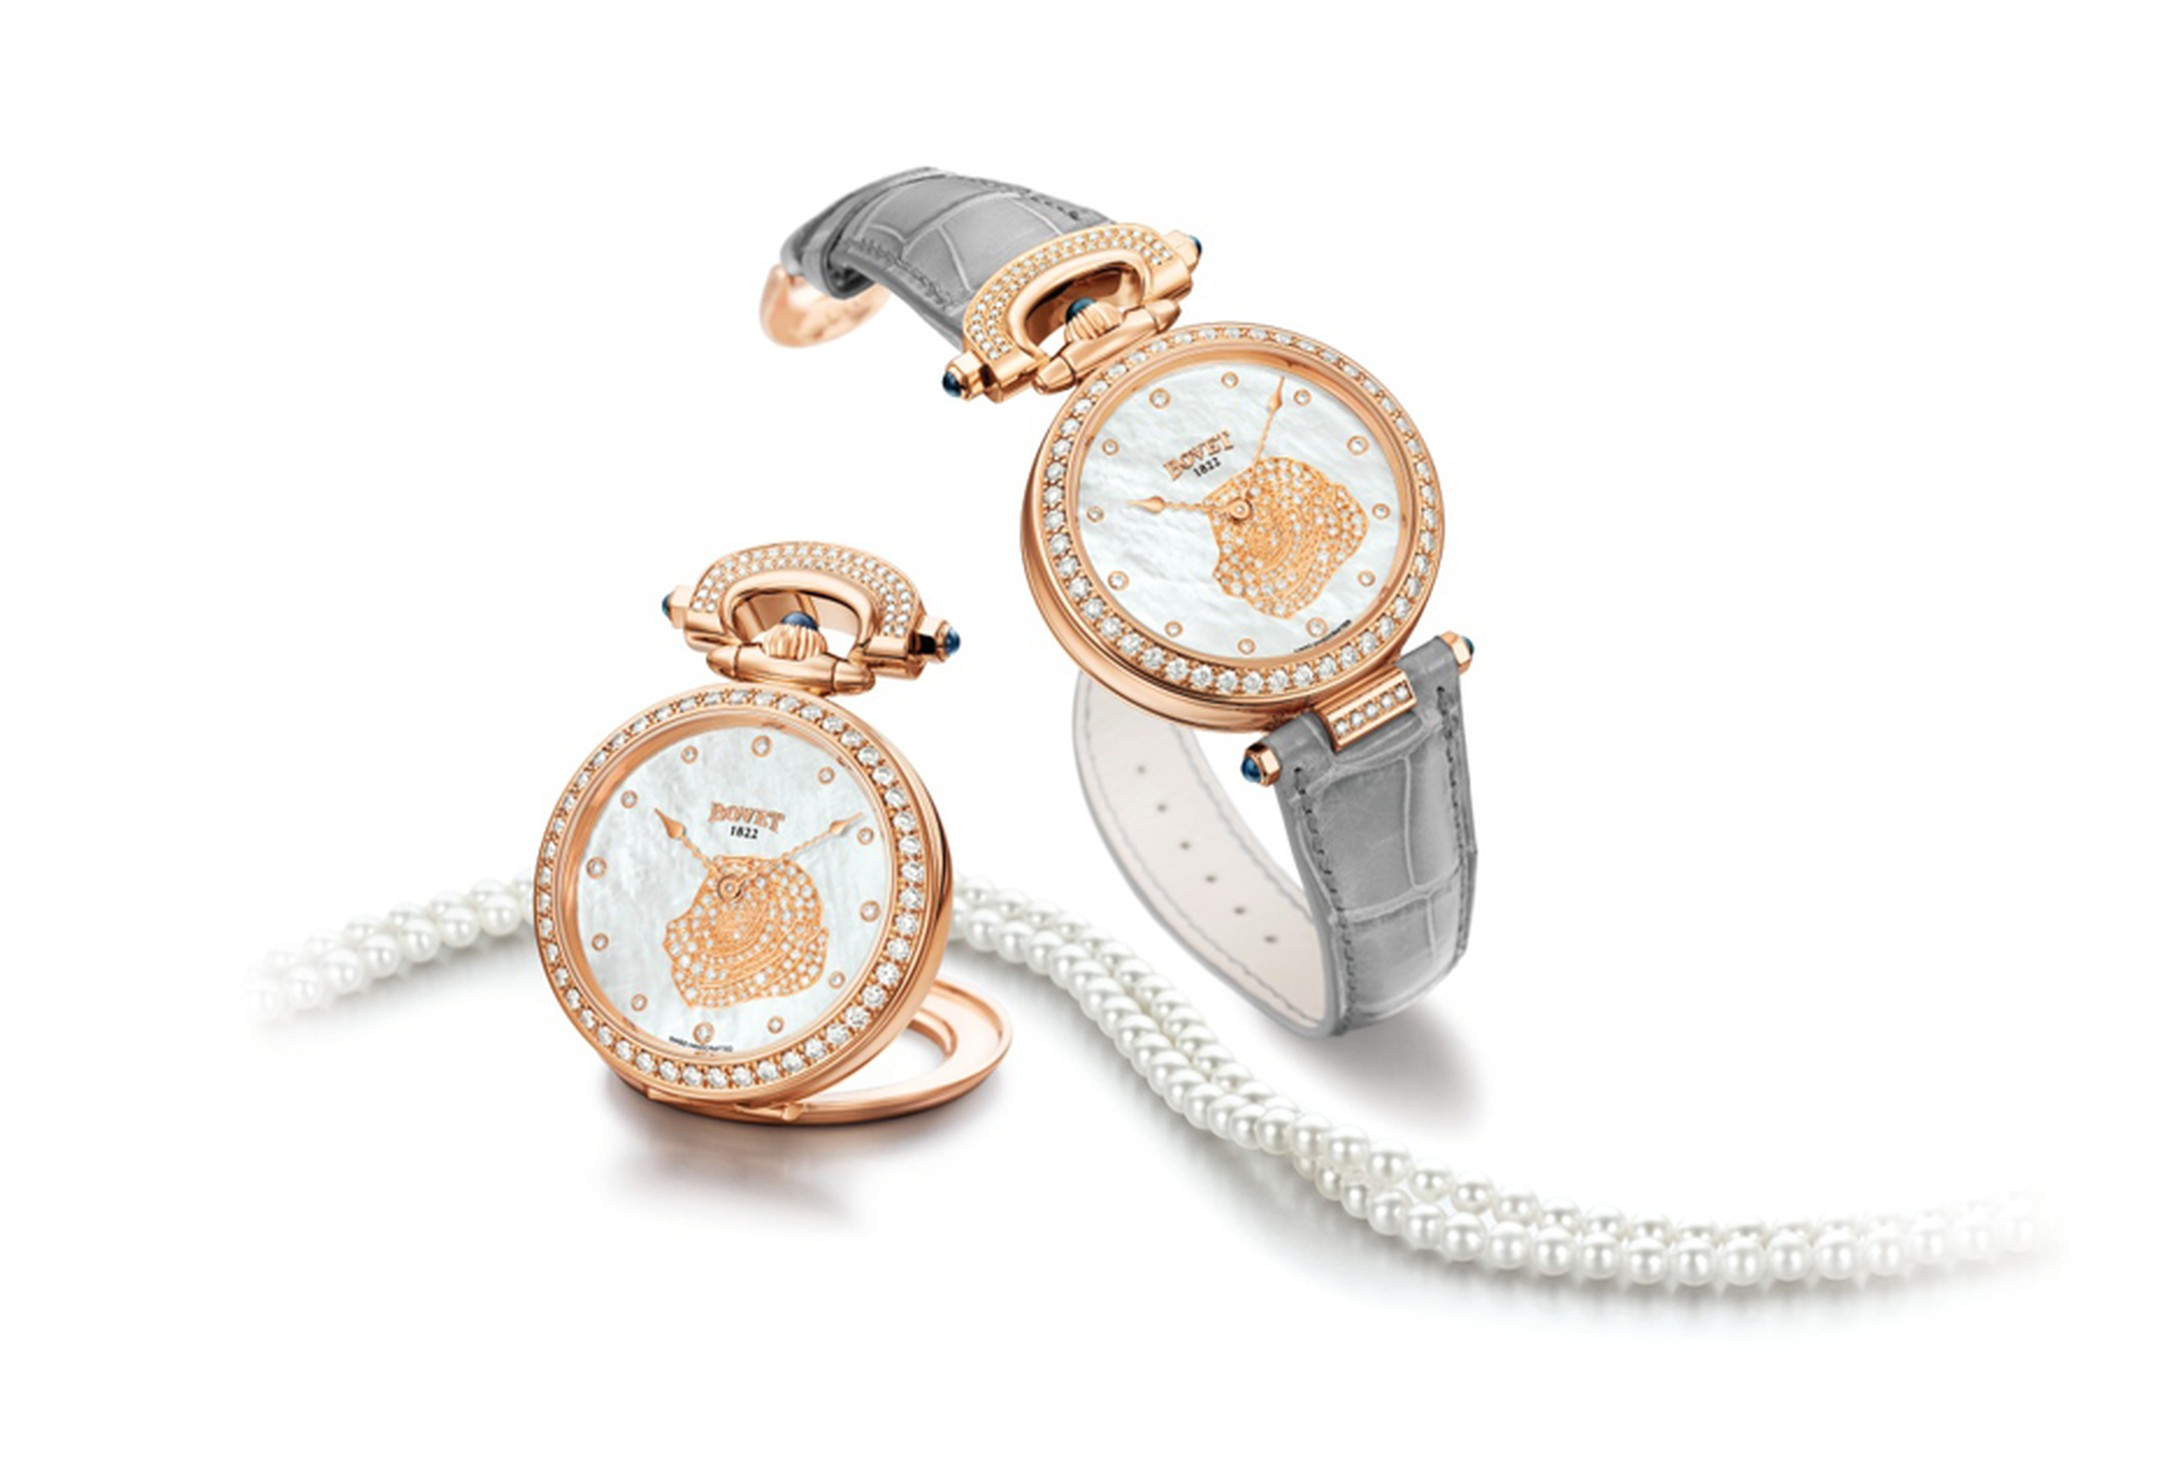 Bovet's Amadeo® Fleurier 39 Rose from the 2013 collection features a mother-of-pearl dial and pearl necklace